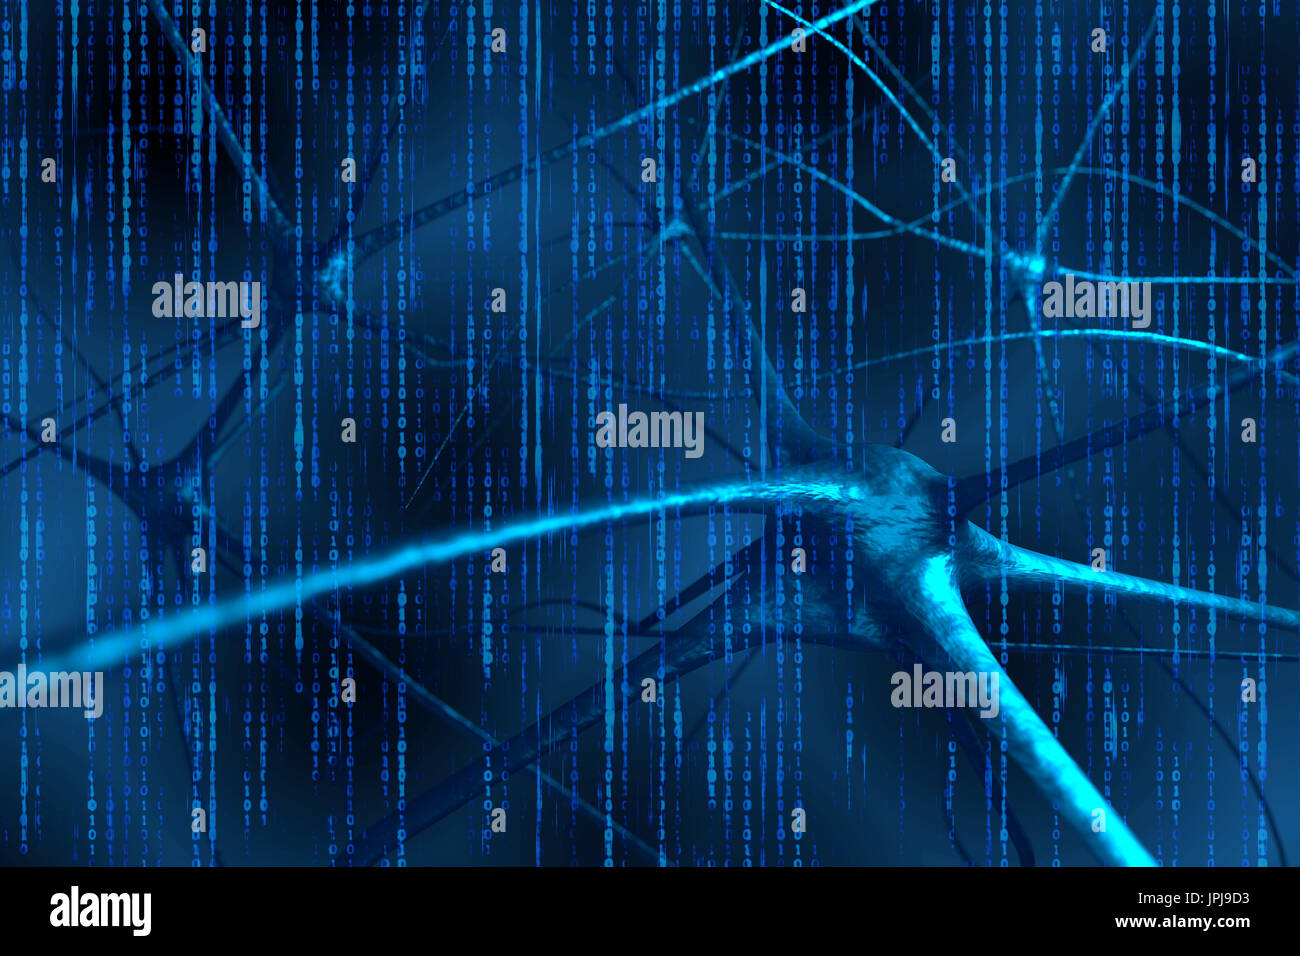 Artificial Intelligence And Deep Learning Technology Concept Blue Or Photo Of Circuit Board Skinned Human Close Up Binary Code Coded Background 3d Rendering